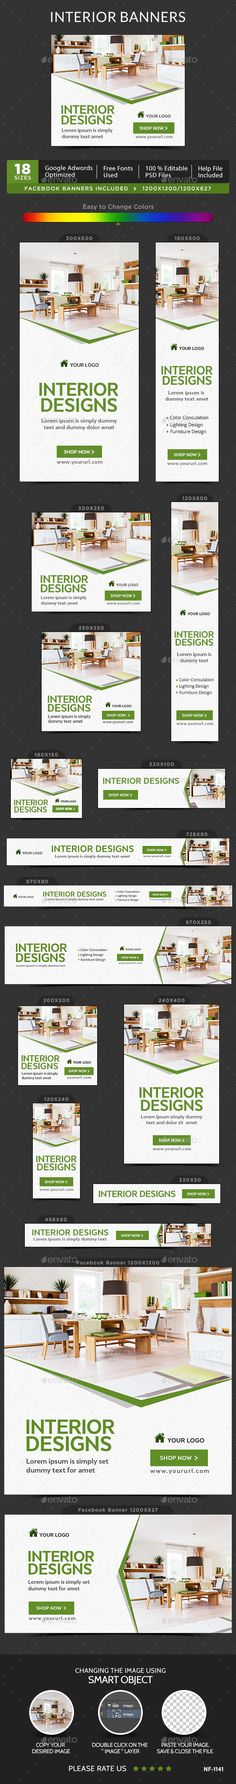 Interior Banners — Photoshop PSD #marketing #adroll • Available here → https://graphicriver.net/item/interior-banners/15123024?ref=pxcr